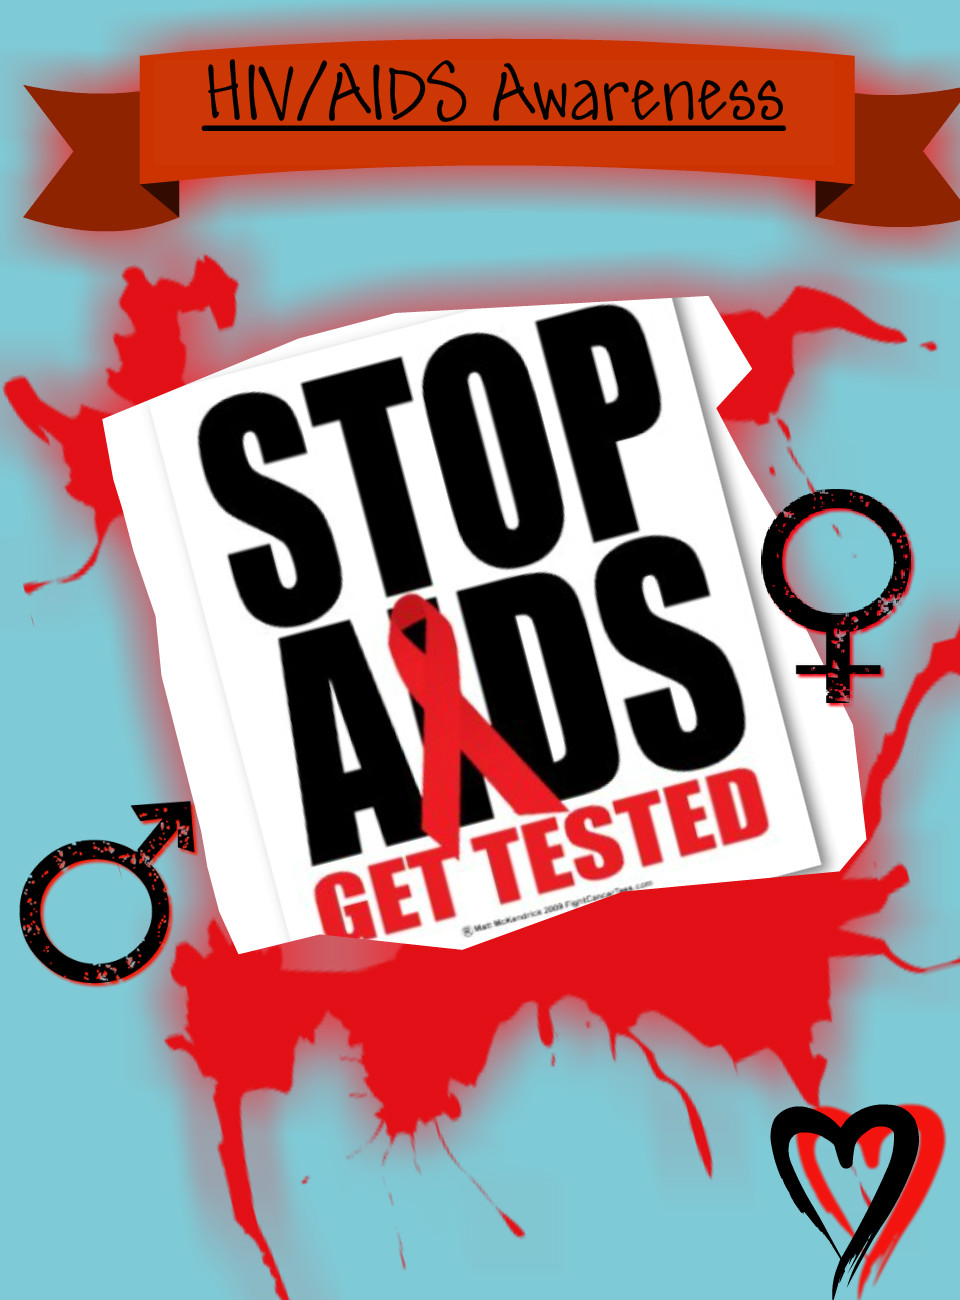 hivaids dating sites Hiv dating since 1998, hiv personals, hiv personal ads, hiv positive owned since 1998.